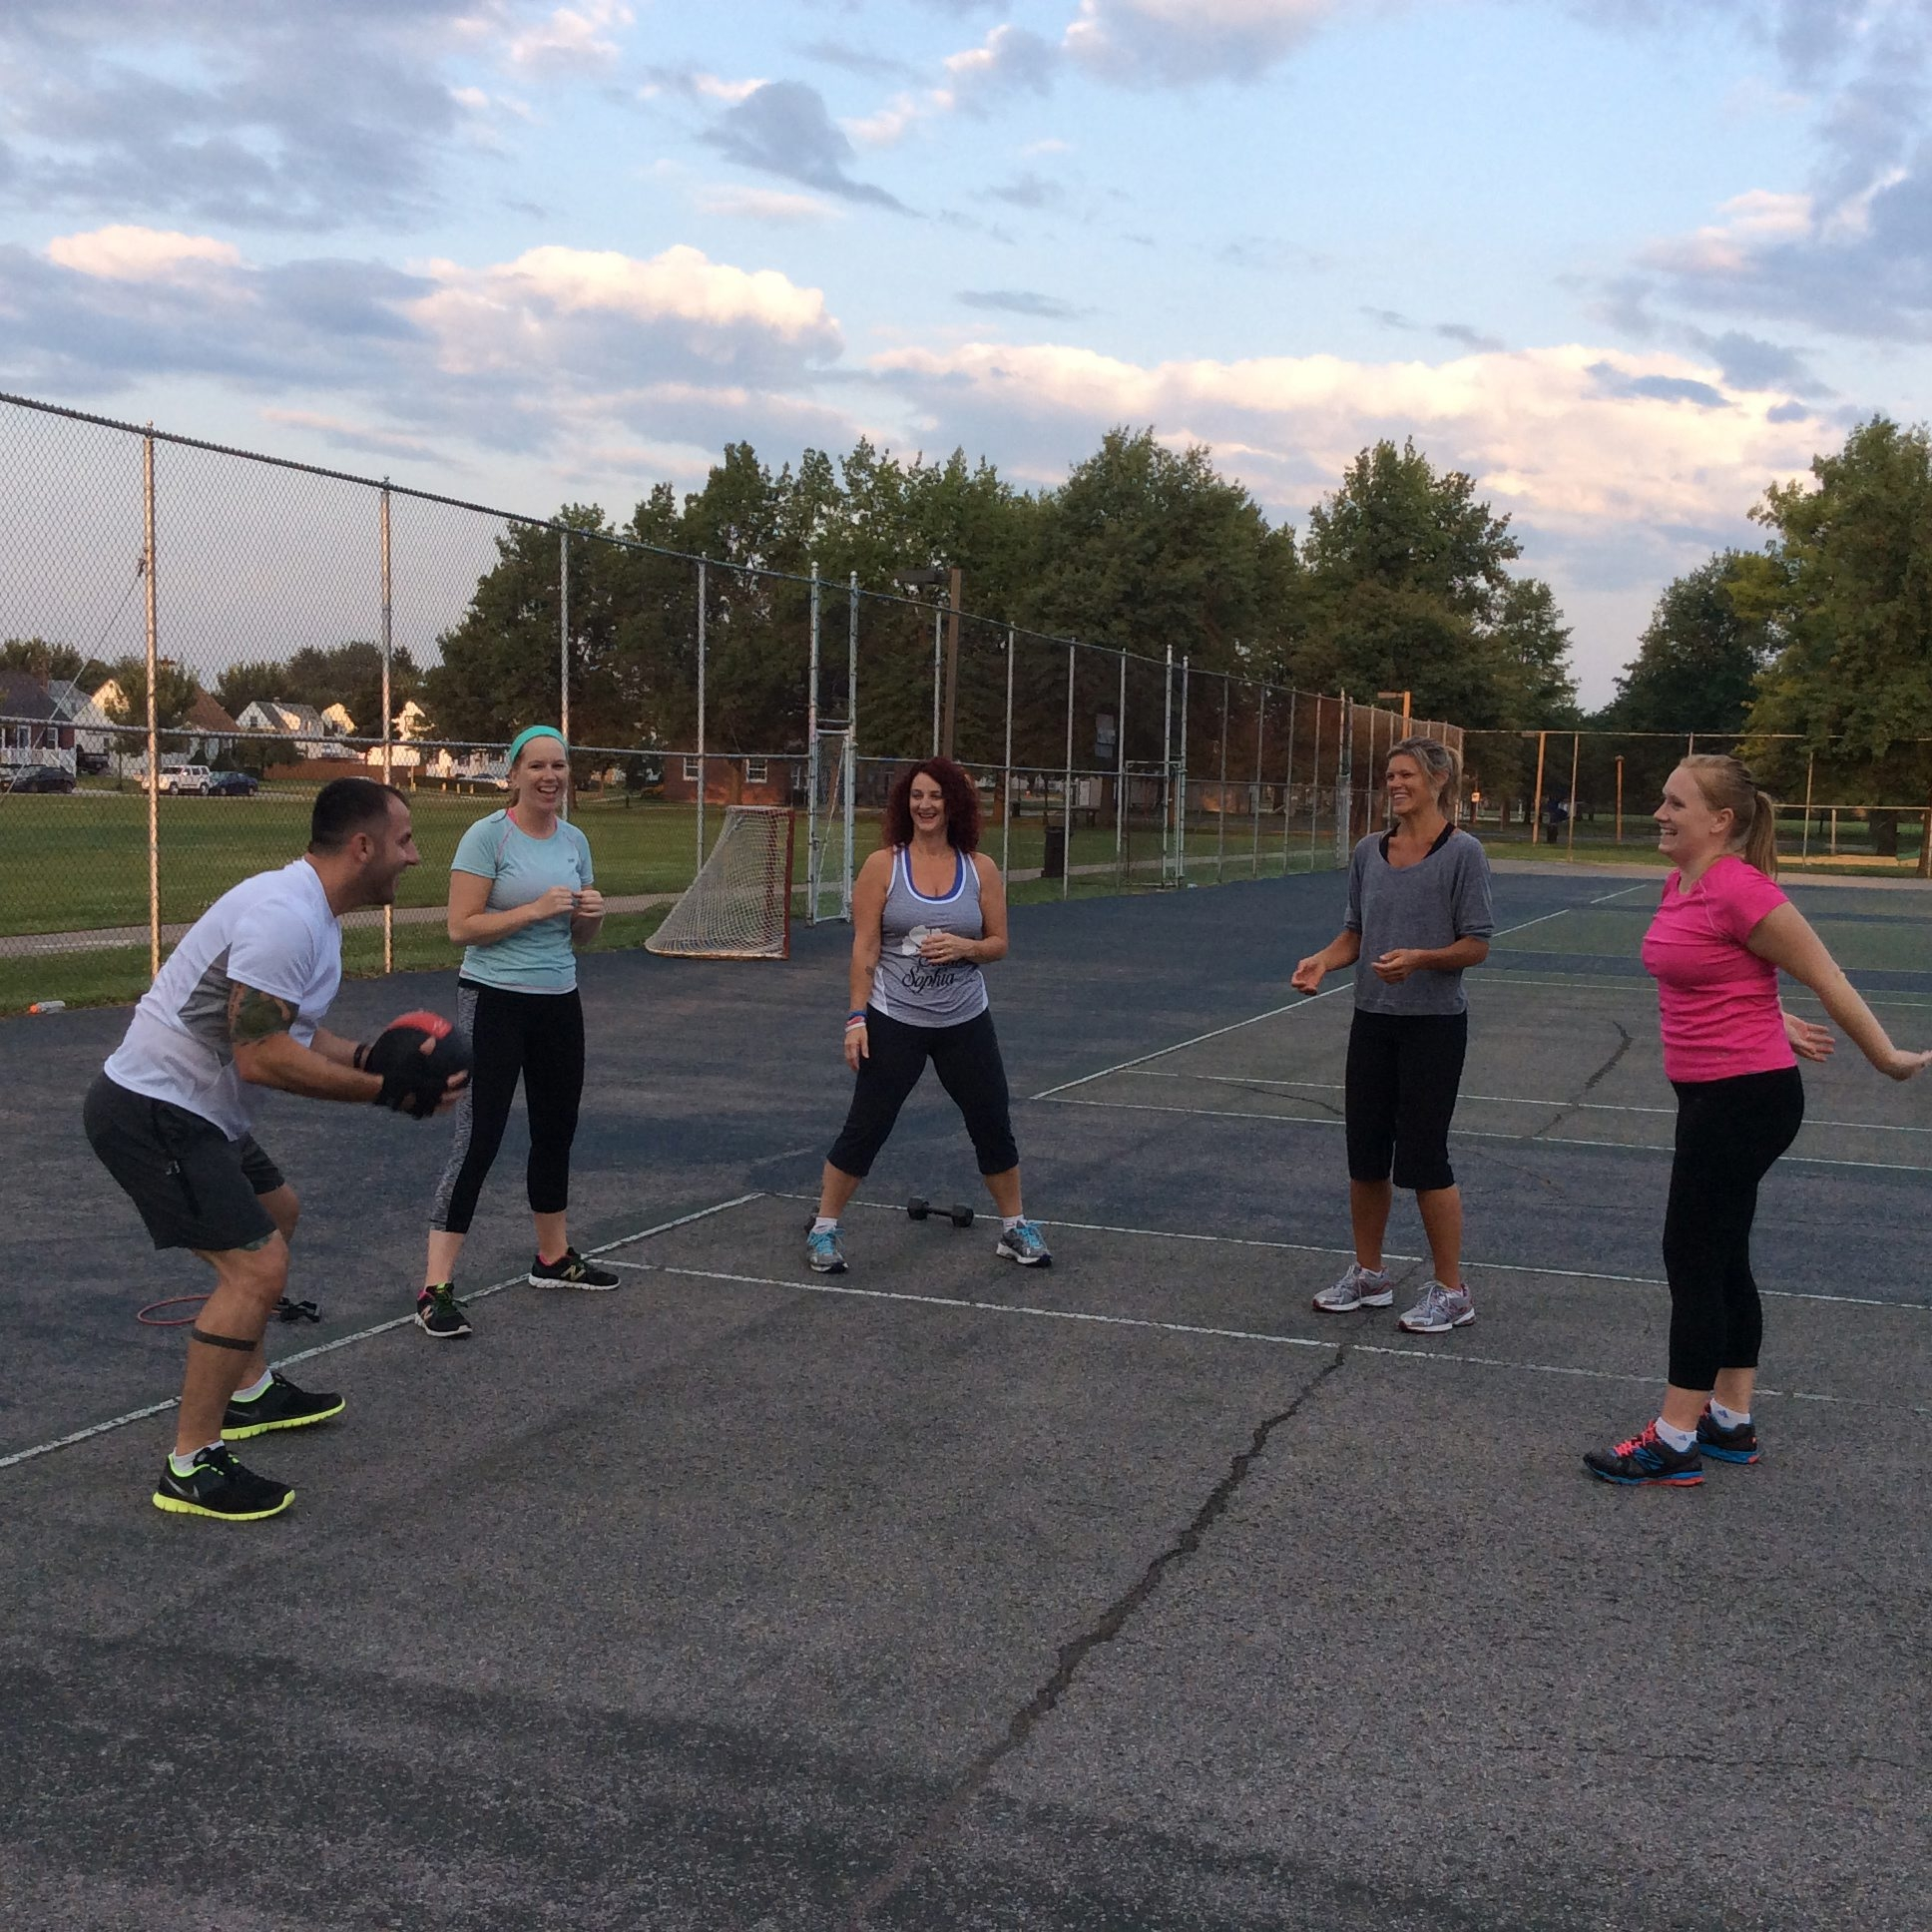 Joining Deanna Giordano, center, at a recent 6 a.m. boot camp are, from left, Kenny Ross, Brittany Sanvidge, Rachel Miller and Casey DeMarco.